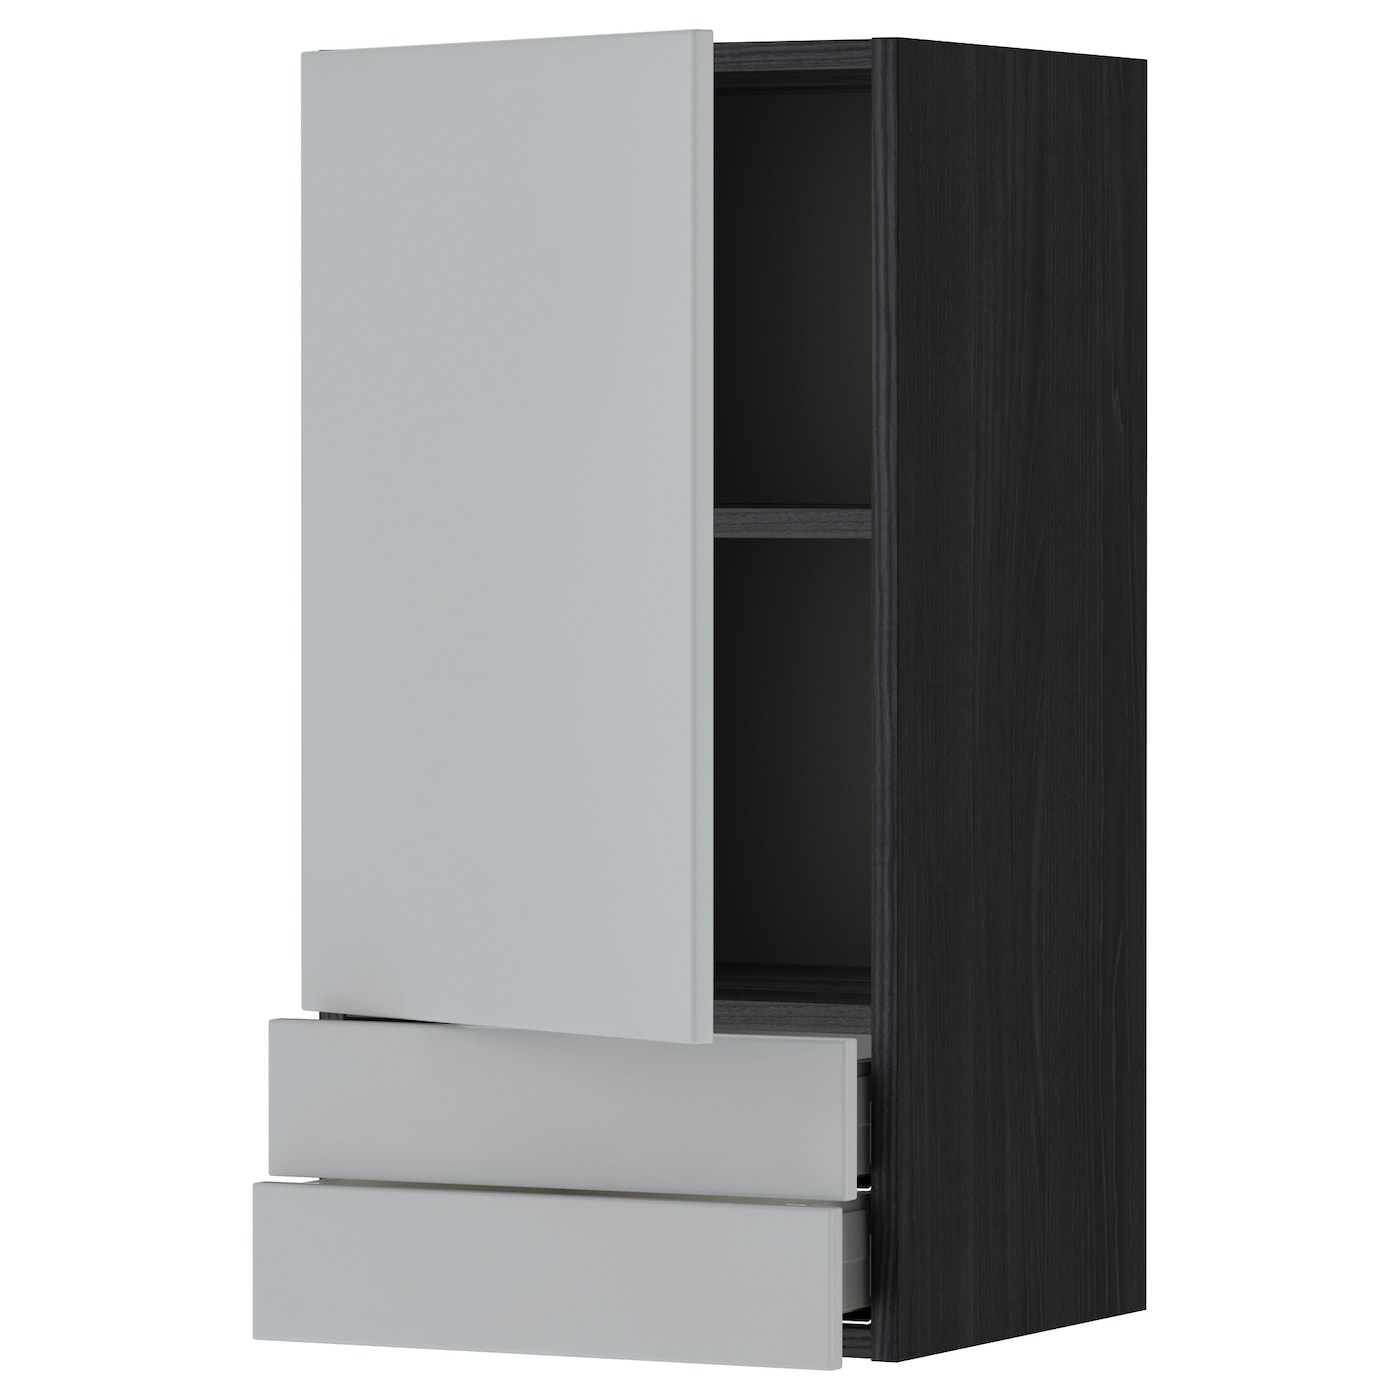 metod maximera wall cabinet with door 2 drawers black veddinge grey 40 x 80 cm ikea. Black Bedroom Furniture Sets. Home Design Ideas